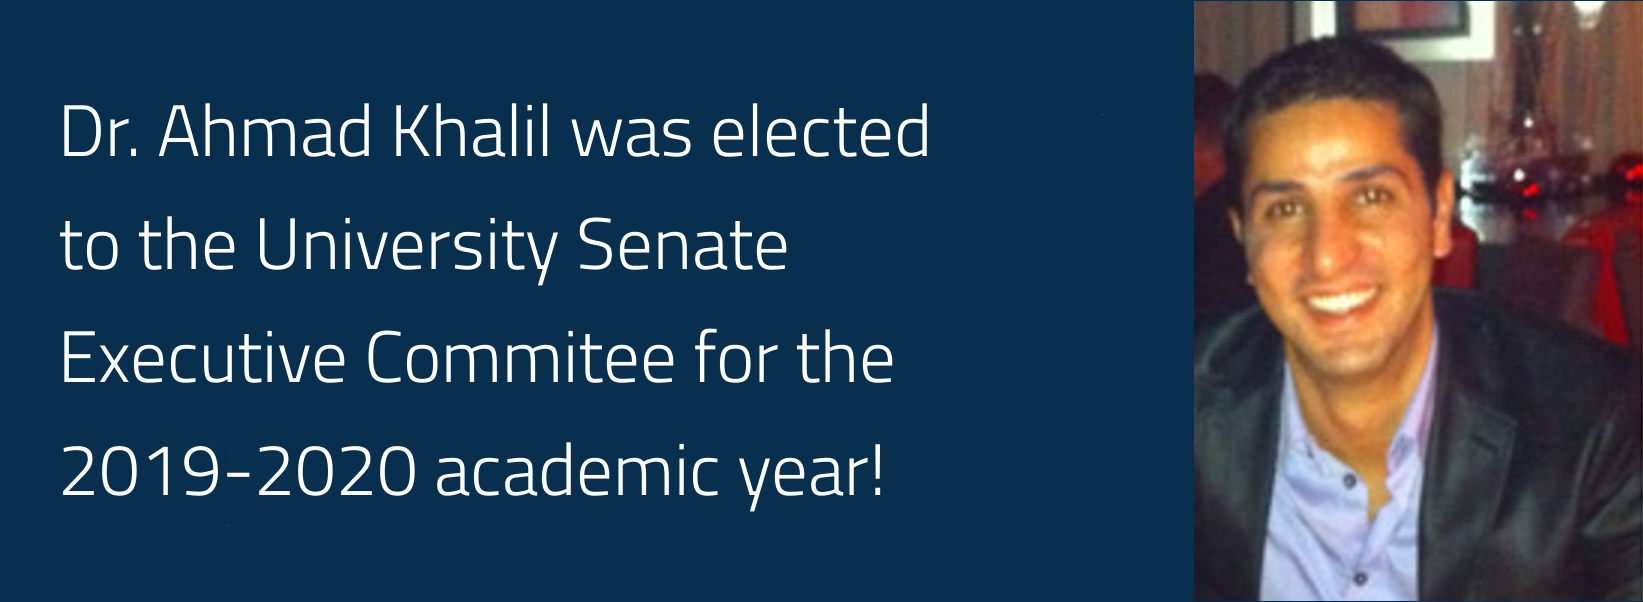 Ahmad Khalil was elected to the University Senate Executive Committee for the 2019-2020 academic year!